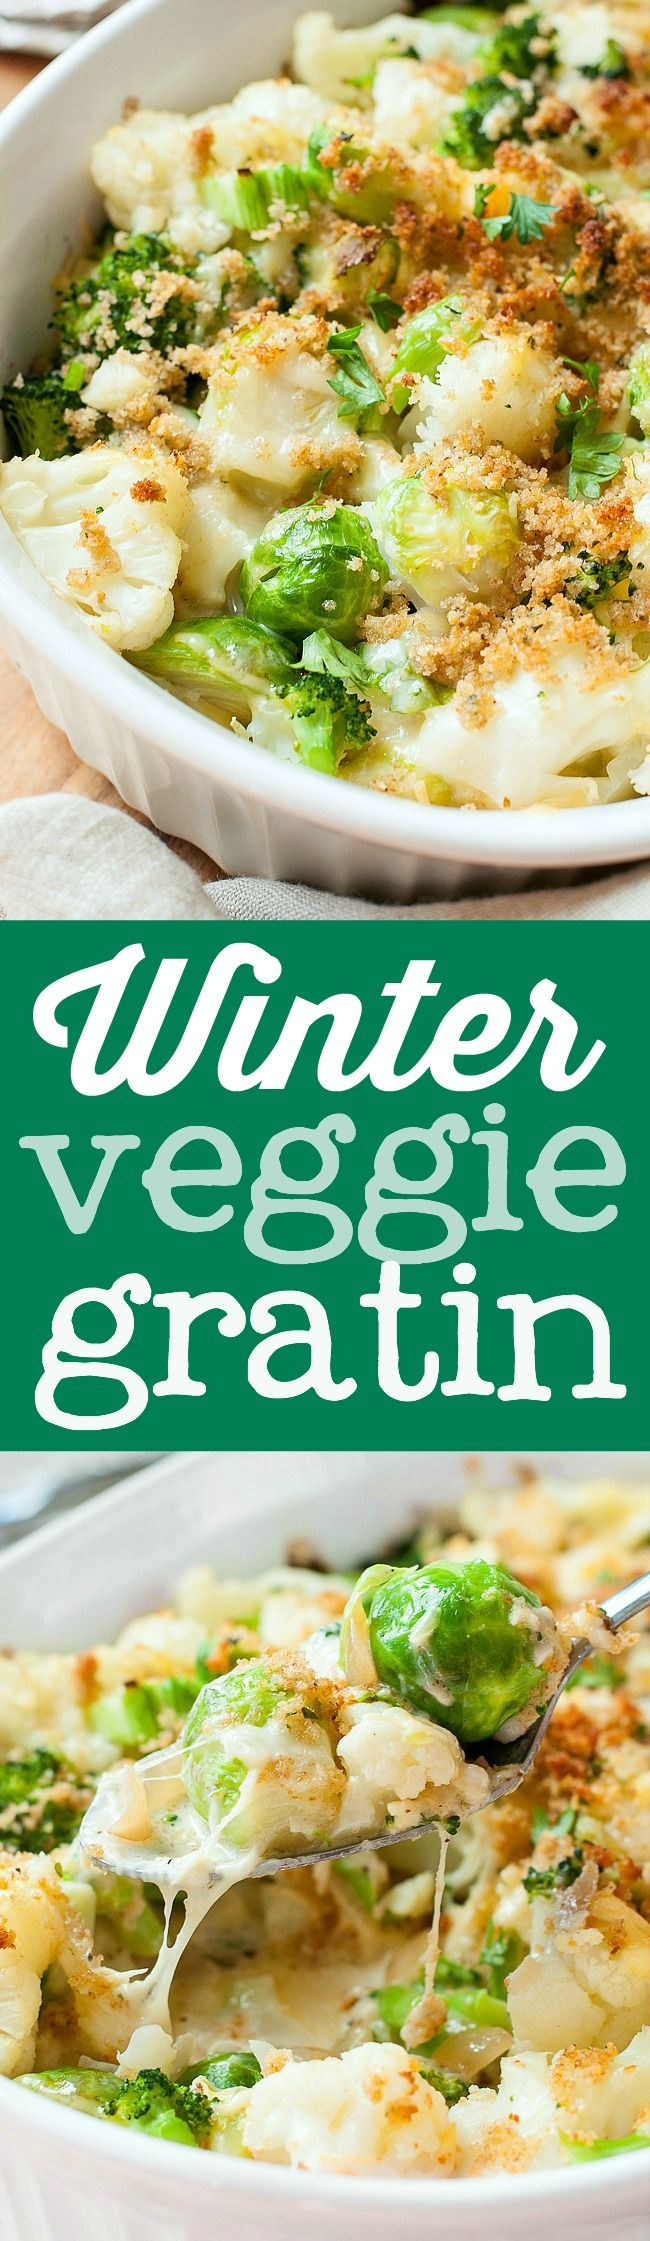 This lusciously epic Winter Veggie Gratin isn't your average casserole! Tender broccoli, cauliflower, and brussels sprouts are blanketed with a creamy béchamel sauce with vanilla-infused caramelized onions, Gouda, and Gruyere cheeses, then topped with golden breadcrumbs for a side dish that's destined to impress!